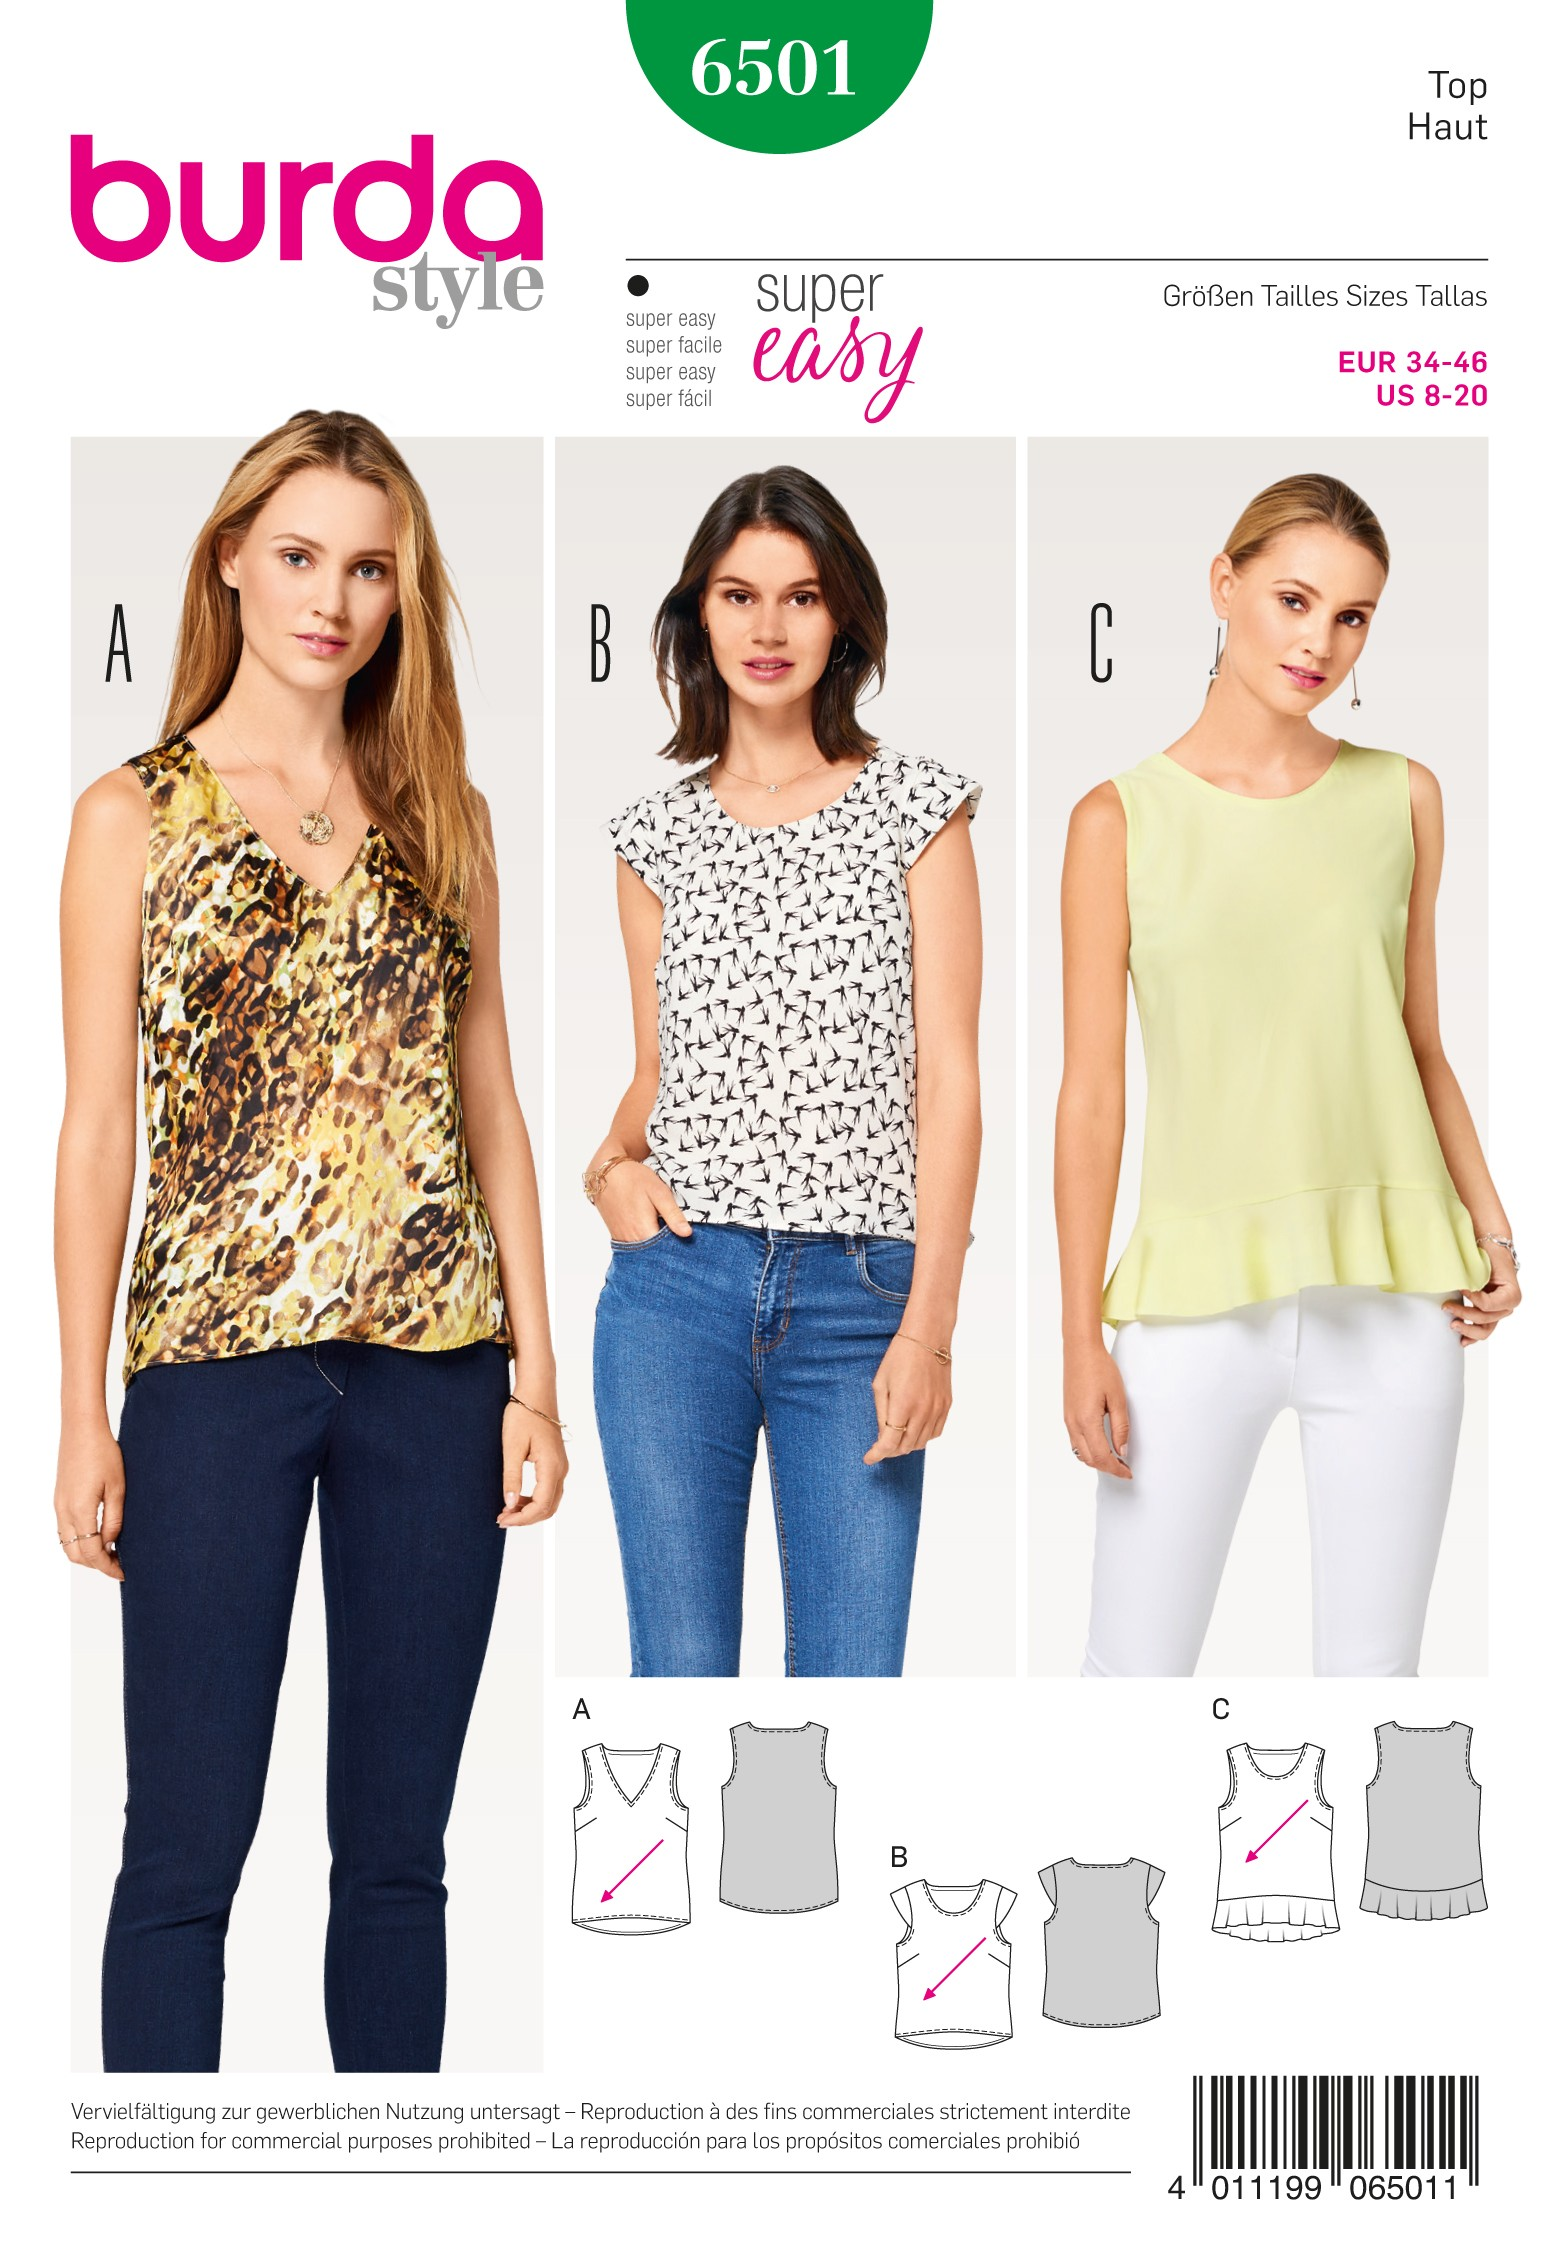 Burda Sewing Pattern 6501 Women's Summer Tops With Flounce Size 8-20